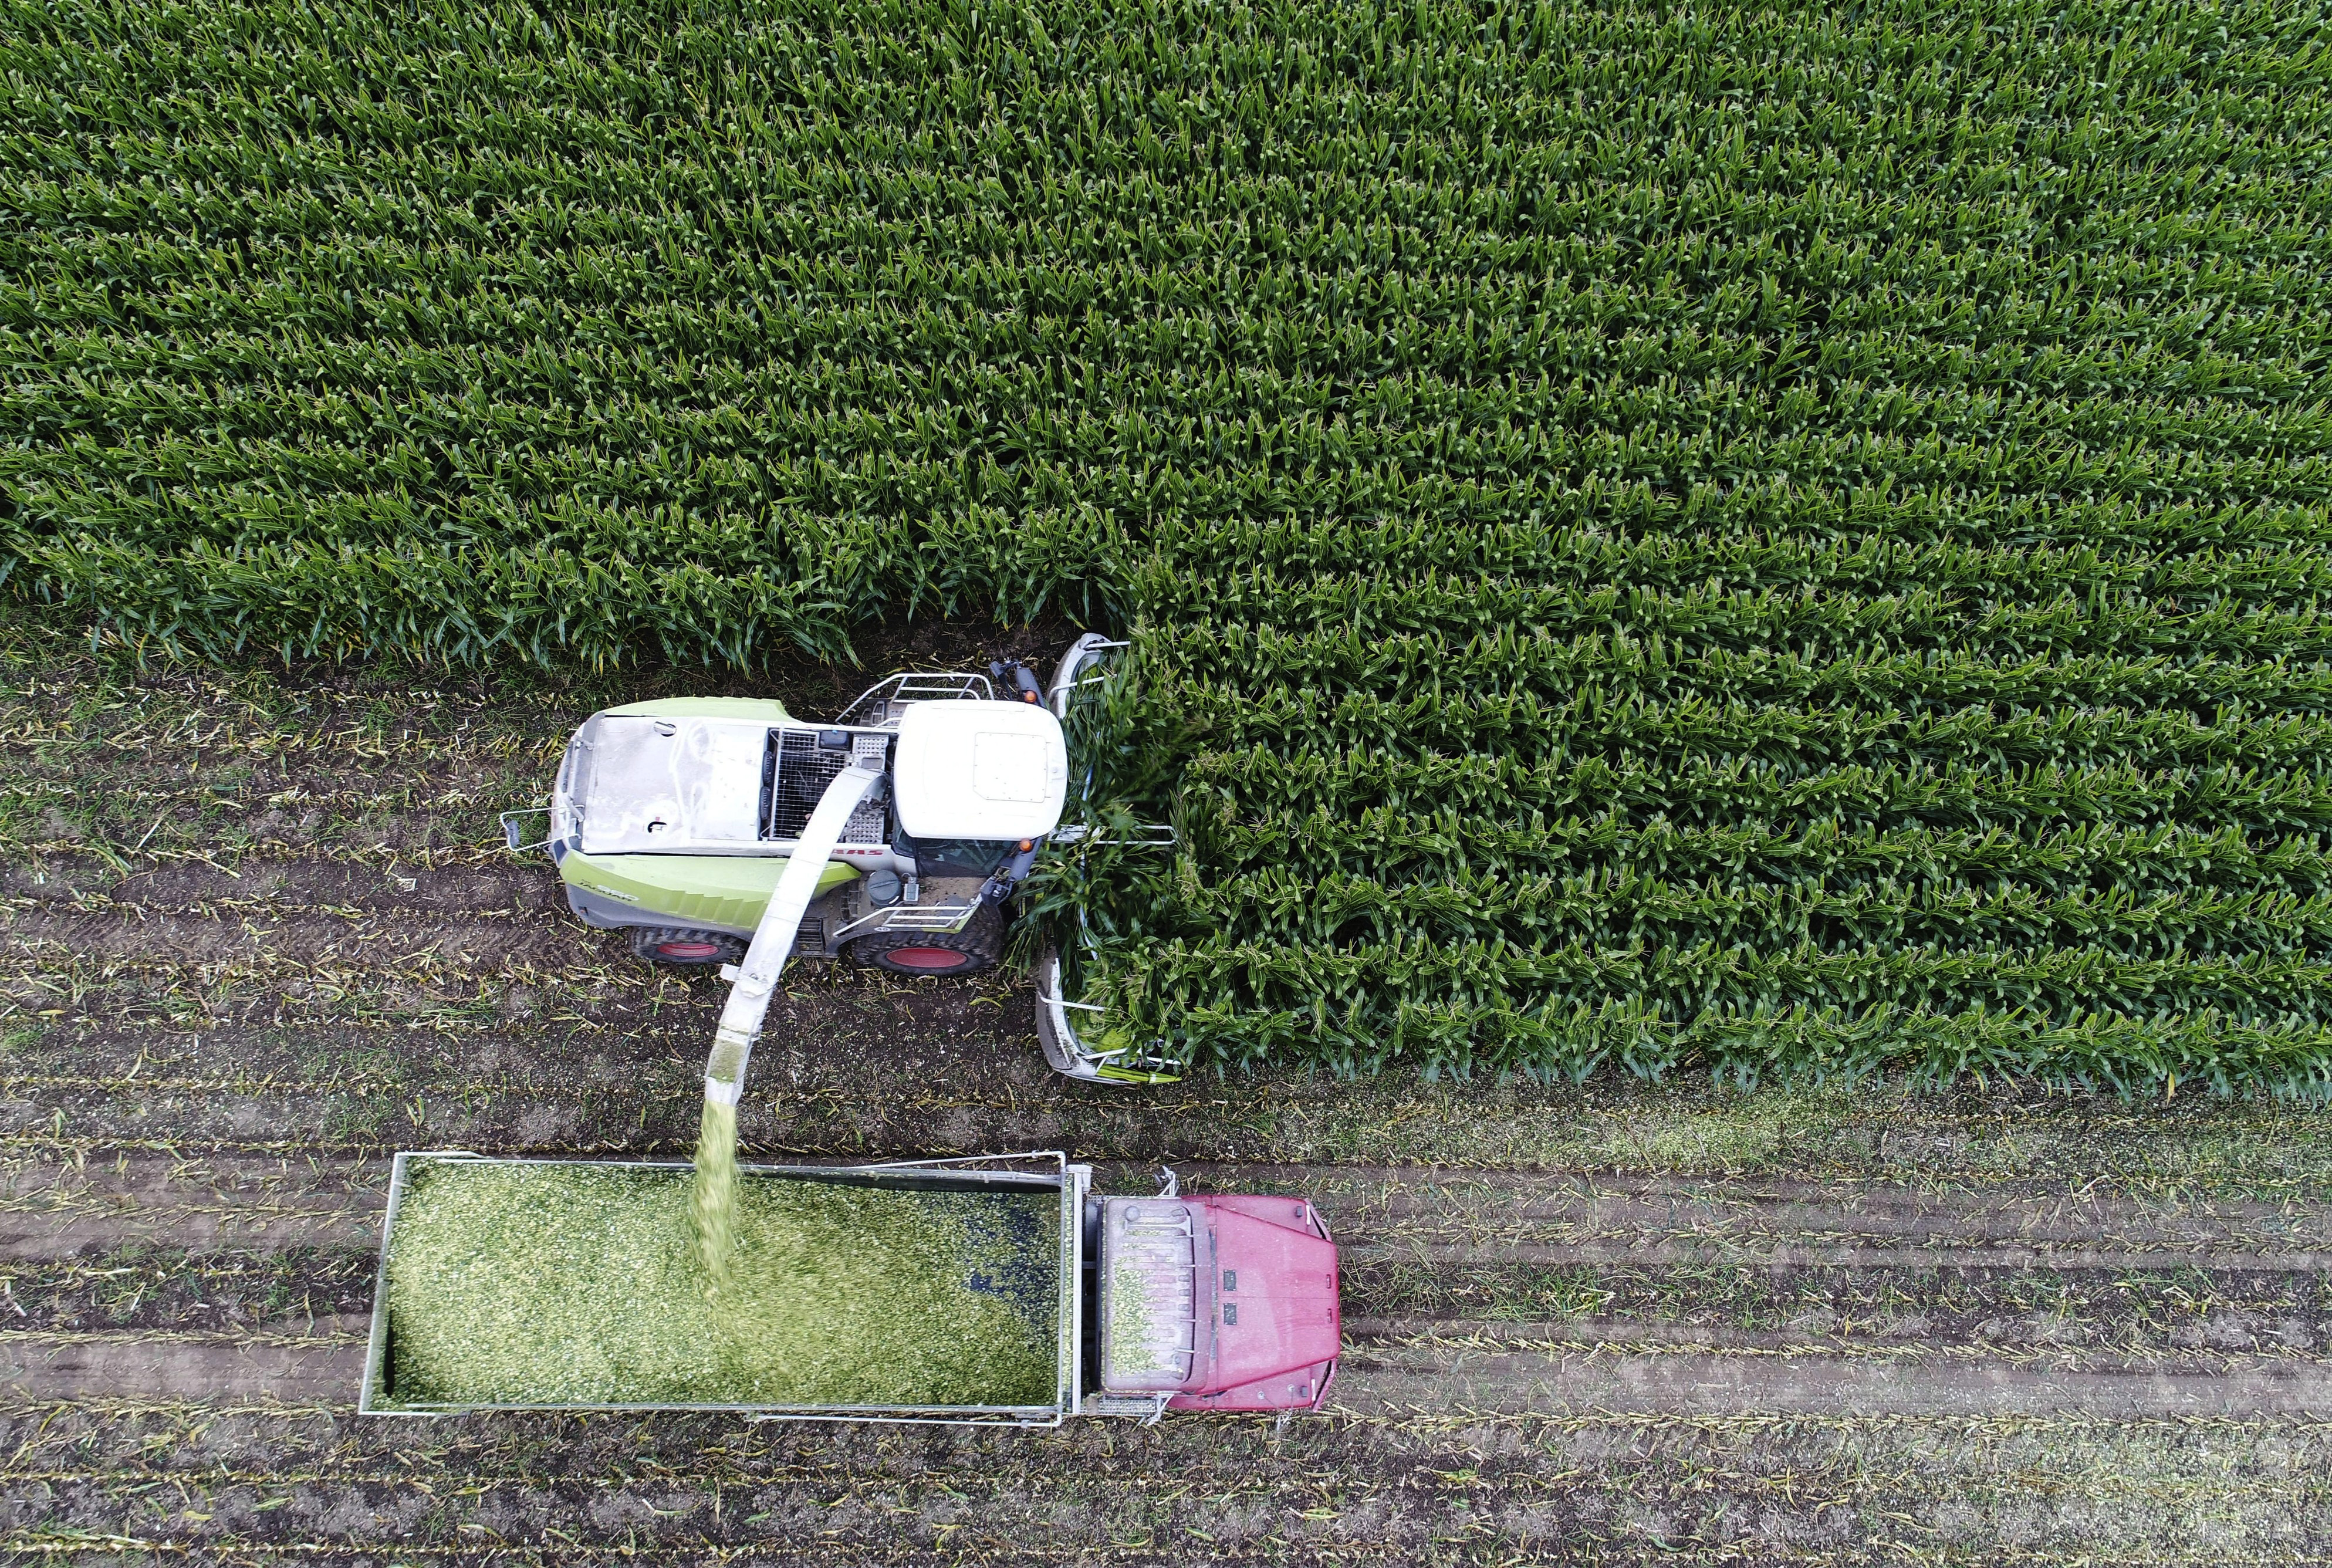 Corn is harvested and chopped for silage at High Lawn Farm in Lee.